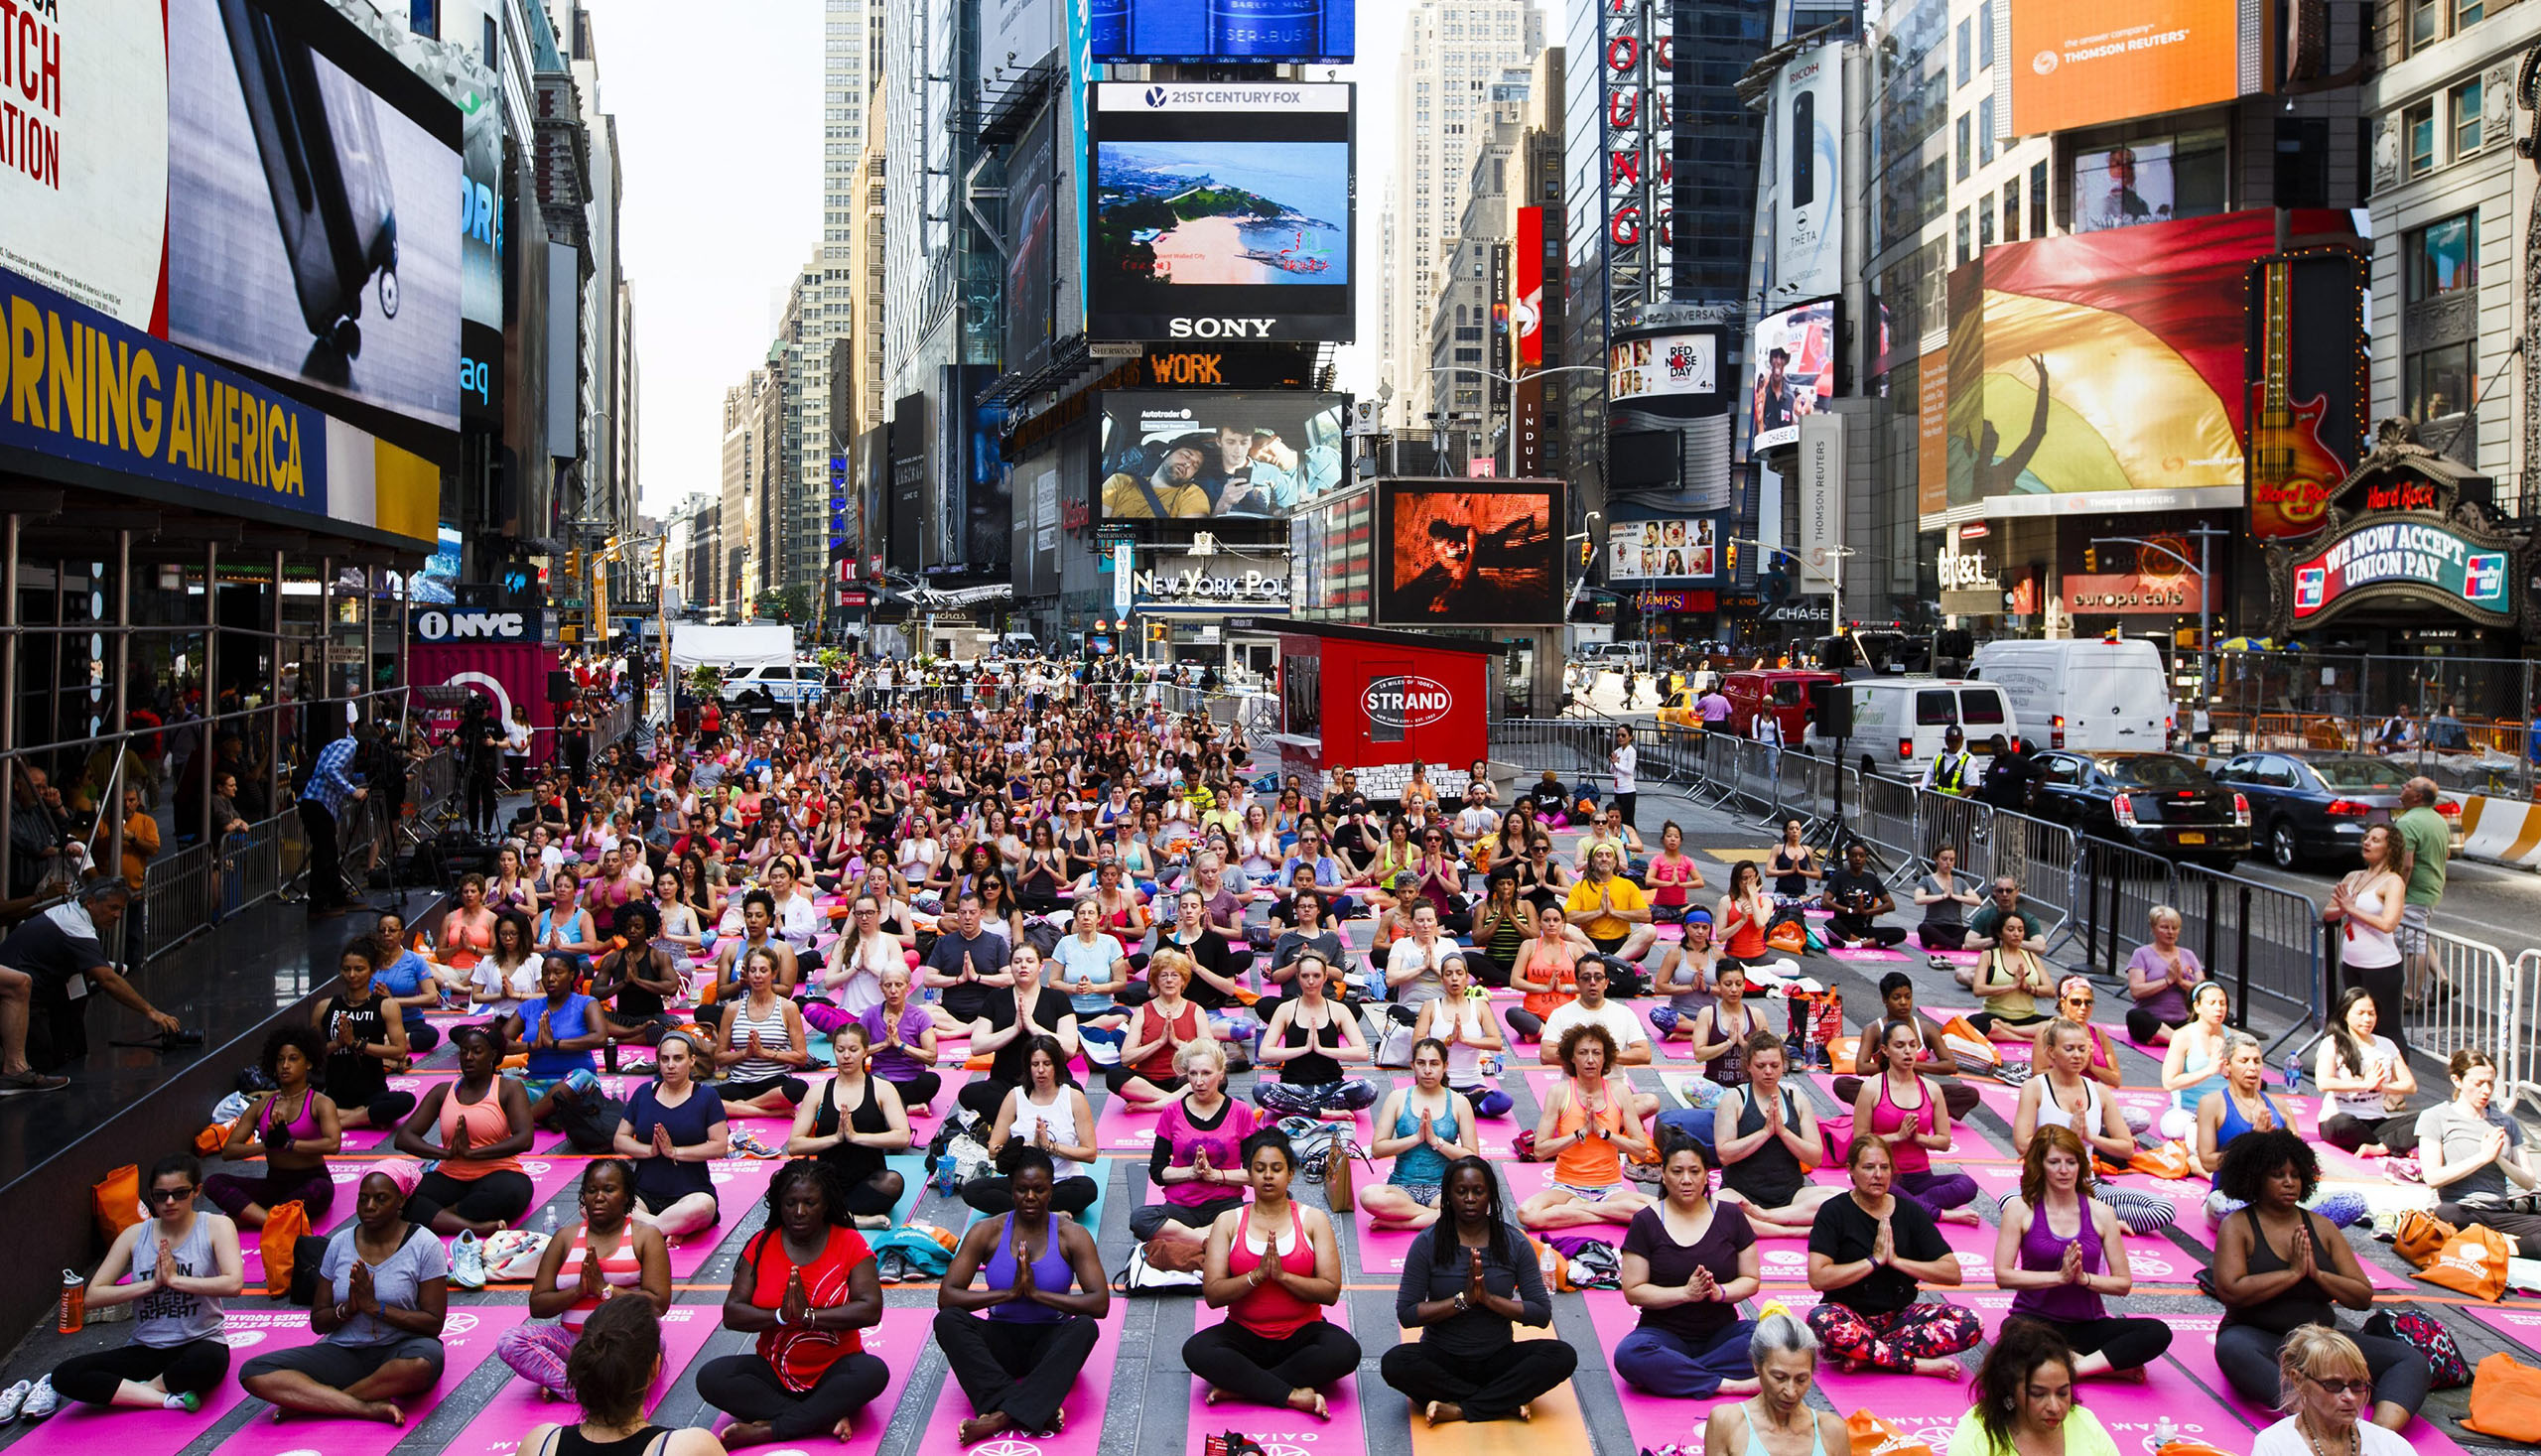 People participate in a group yoga class in Times Square as part of the 14th annual 'Solstice in Times Square: Mind Over Madness Yoga' to mark the summer solstice in New York, New York, June 20, 2016.